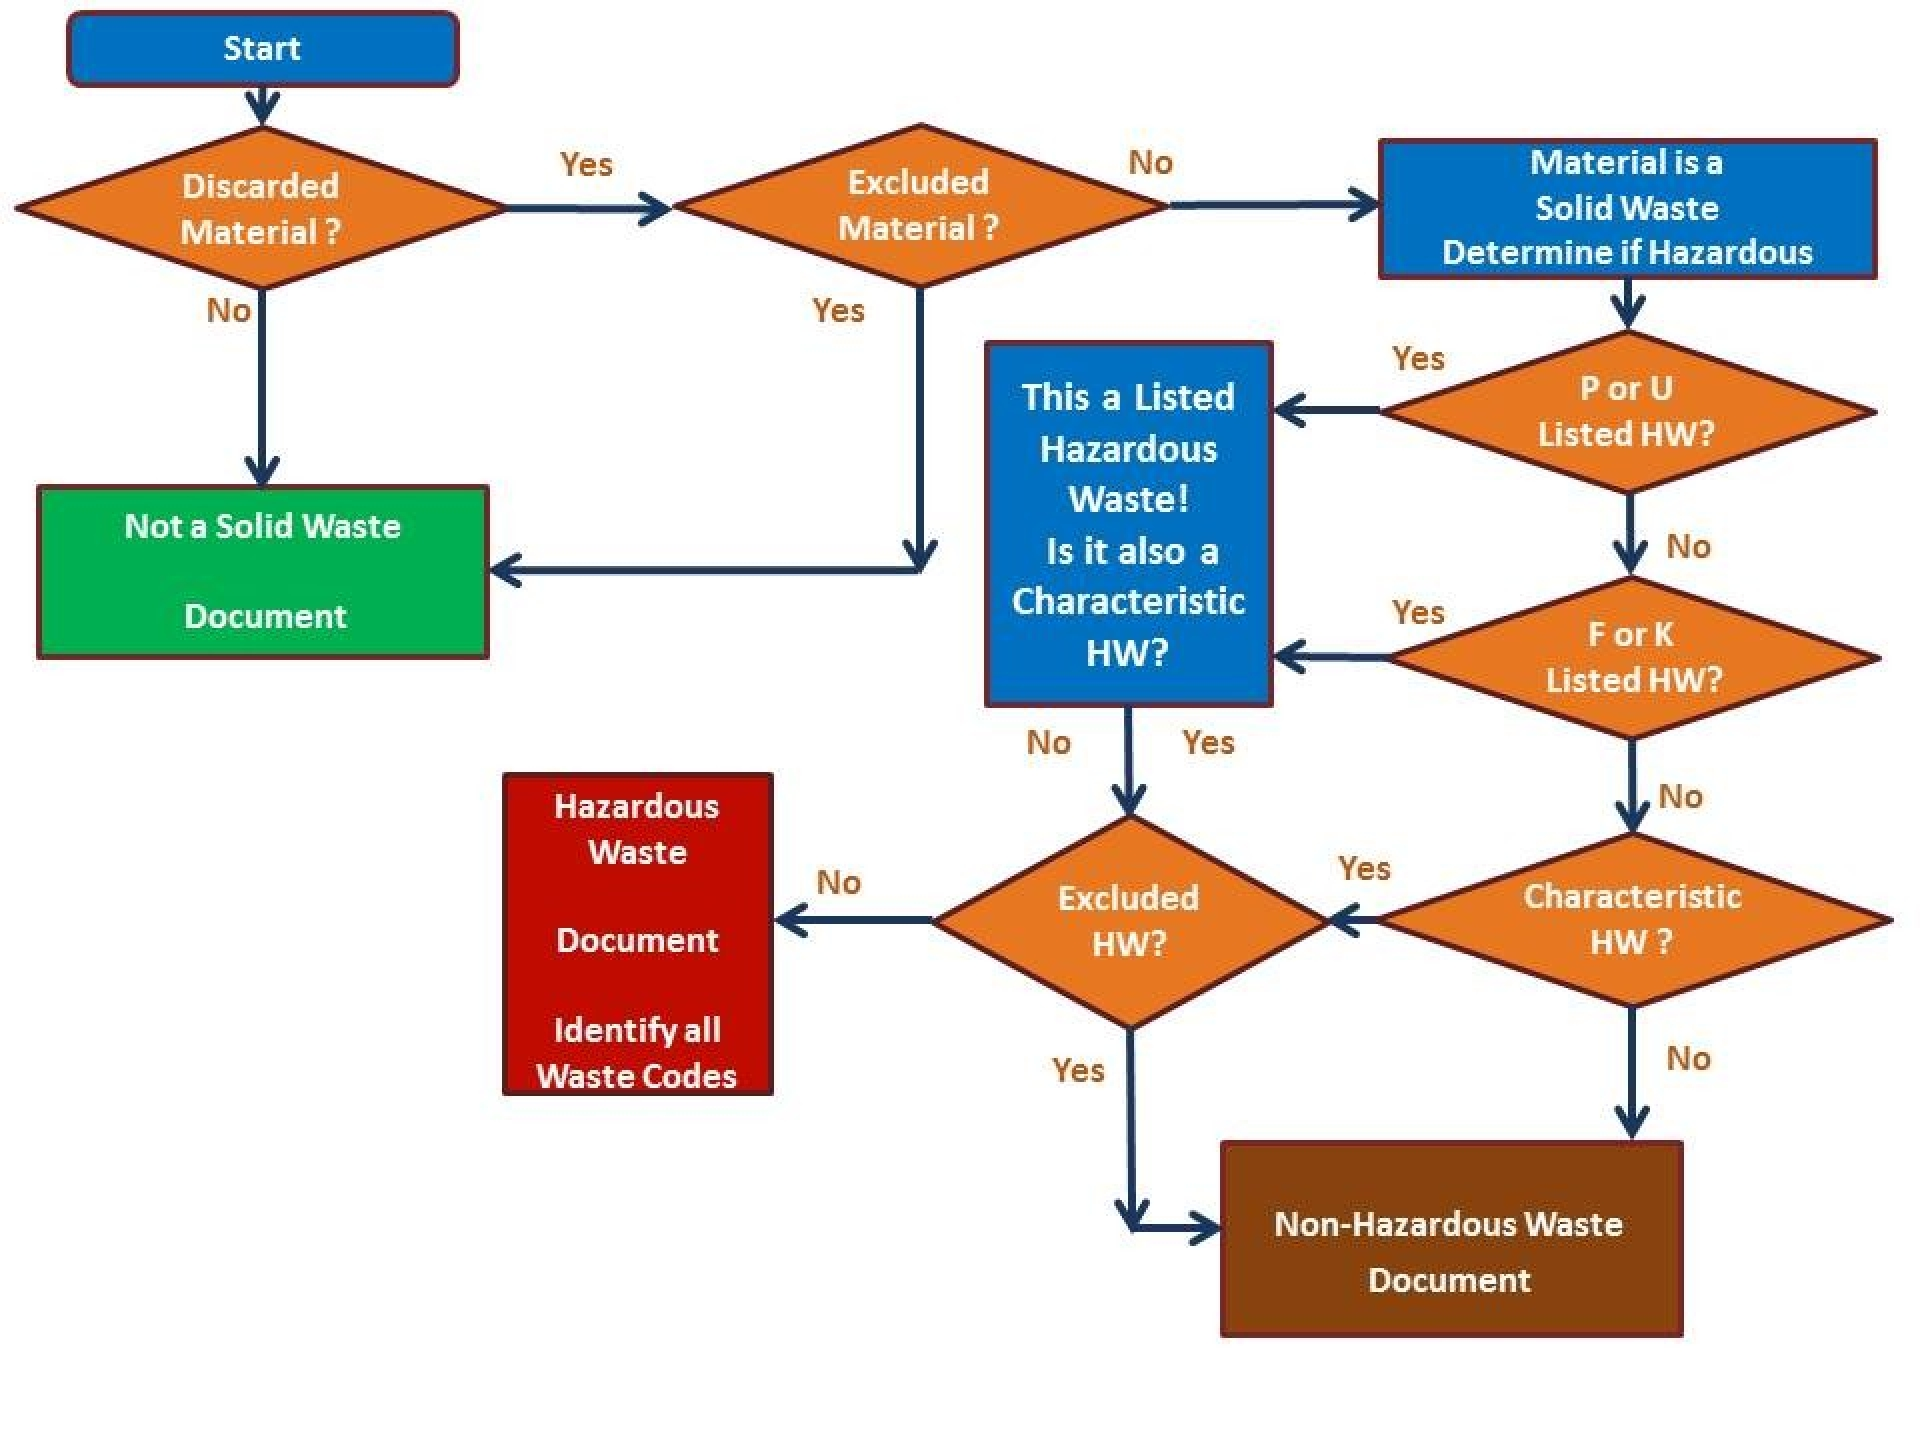 Flow chart as illustration of the determination process you will experience using this matrix